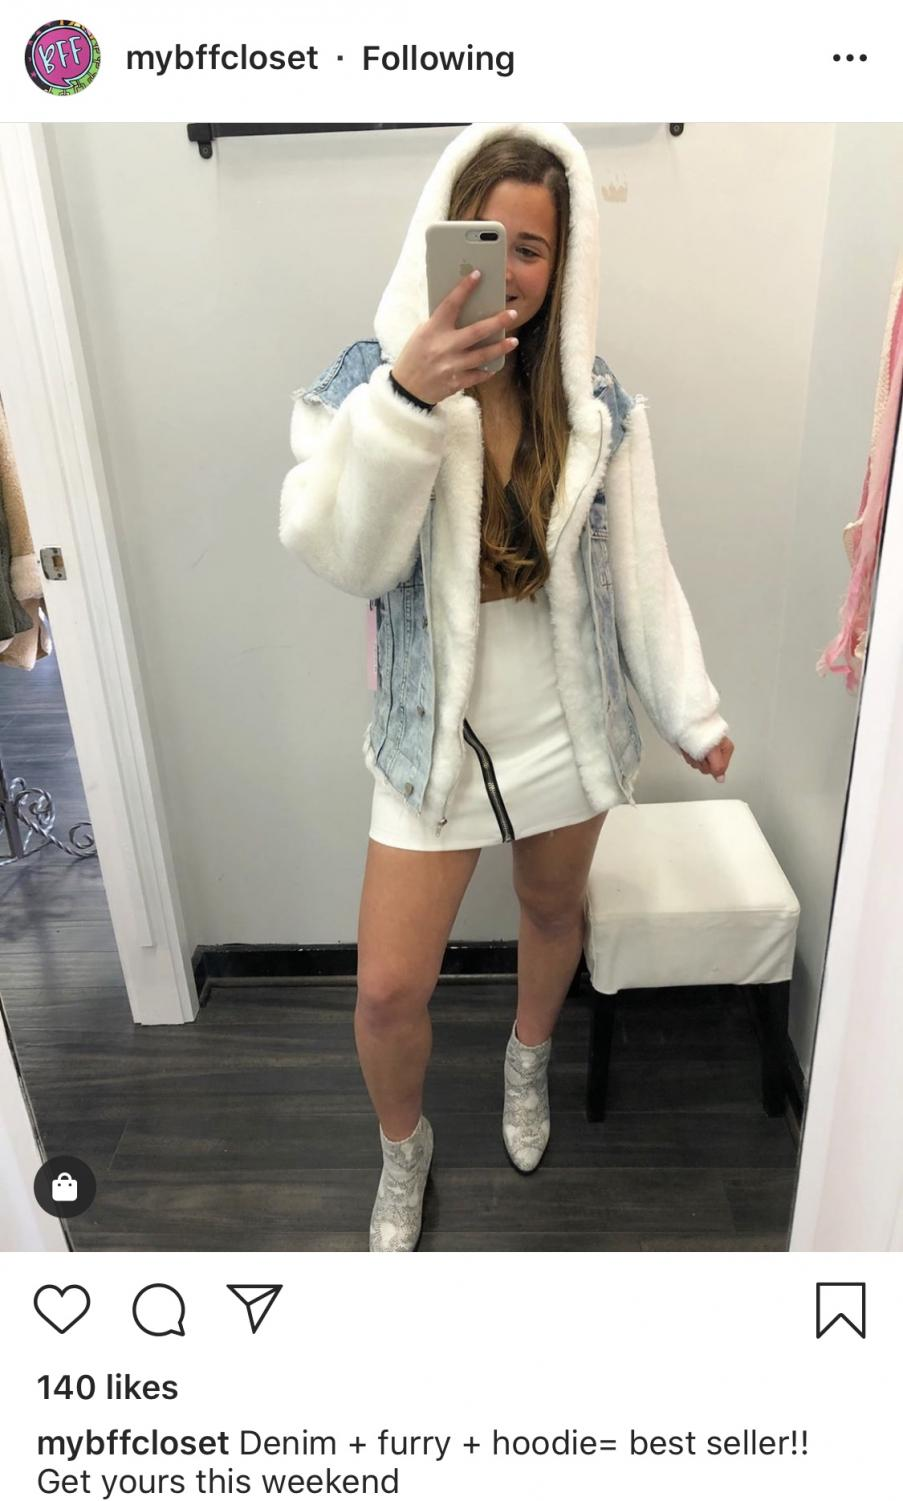 One of Sarah Genn's responsibilies as a retail workers at My Best Friend's Closet is to model the clothing for Instagram. This was a post from Nov. 3 promotting some of the store's newest winter styles.